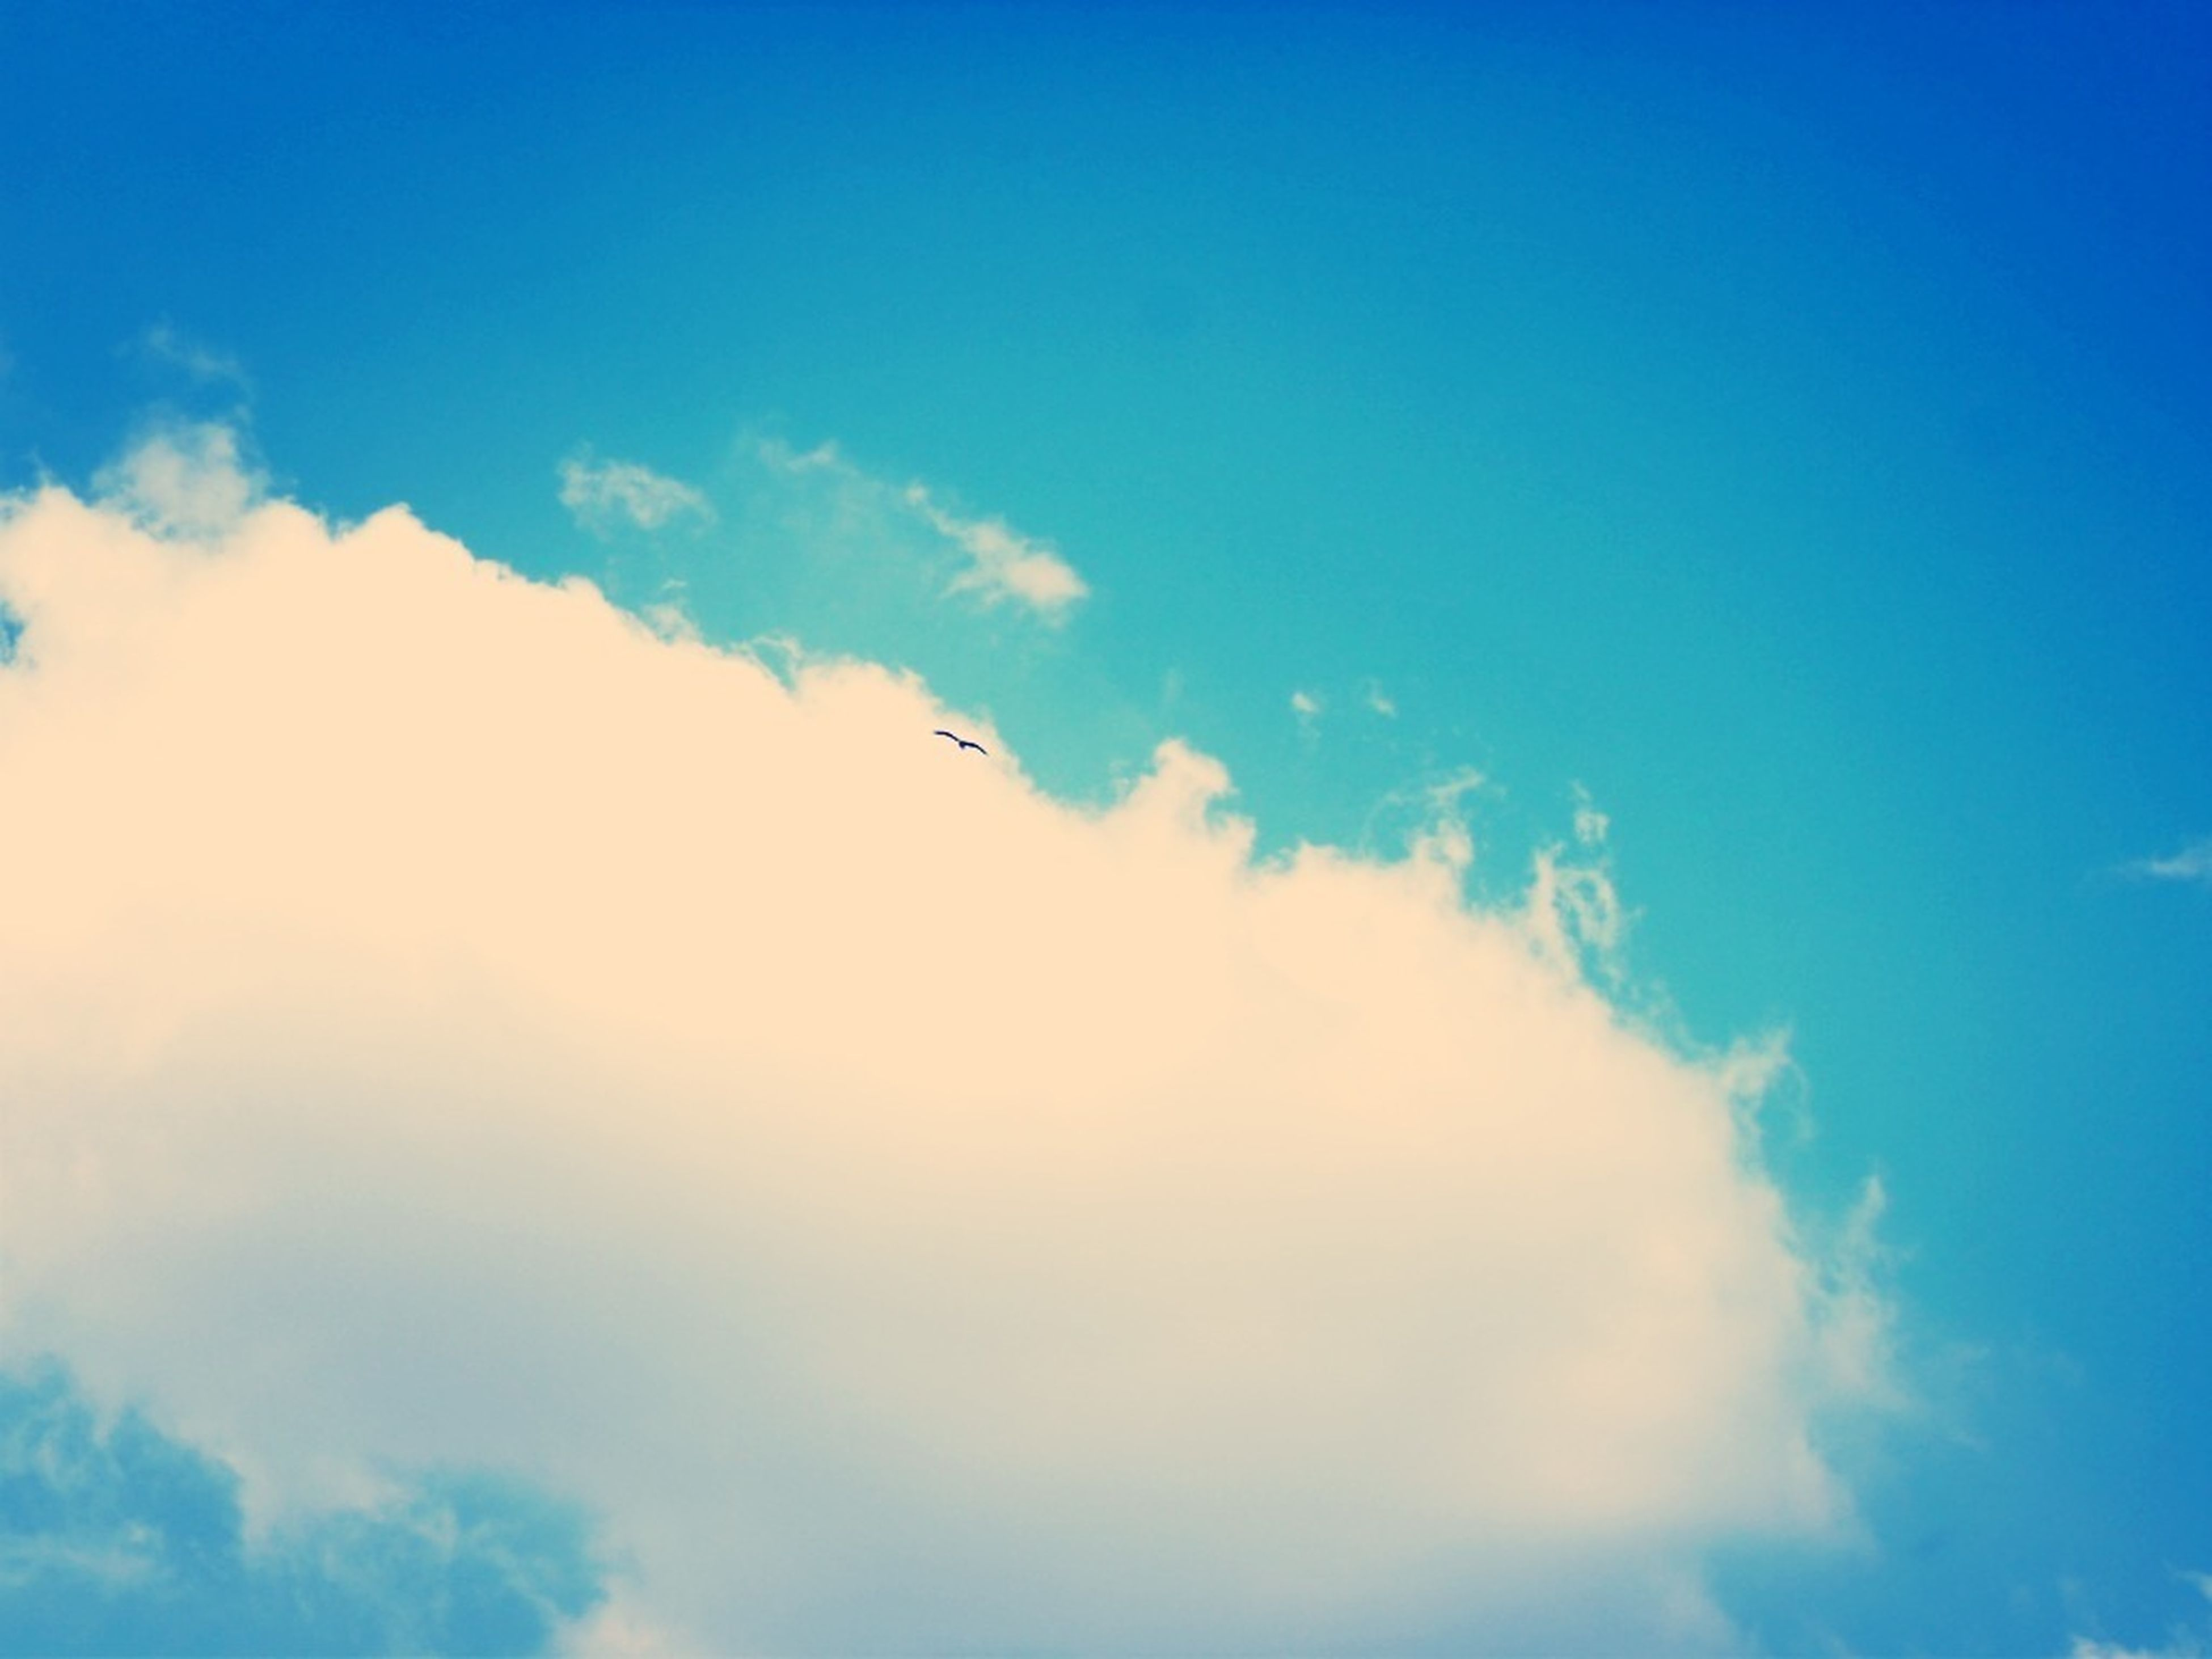 low angle view, blue, sky, flying, cloud - sky, beauty in nature, nature, tranquility, scenics, mid-air, cloud, tranquil scene, outdoors, animal themes, day, no people, bird, sky only, copy space, idyllic